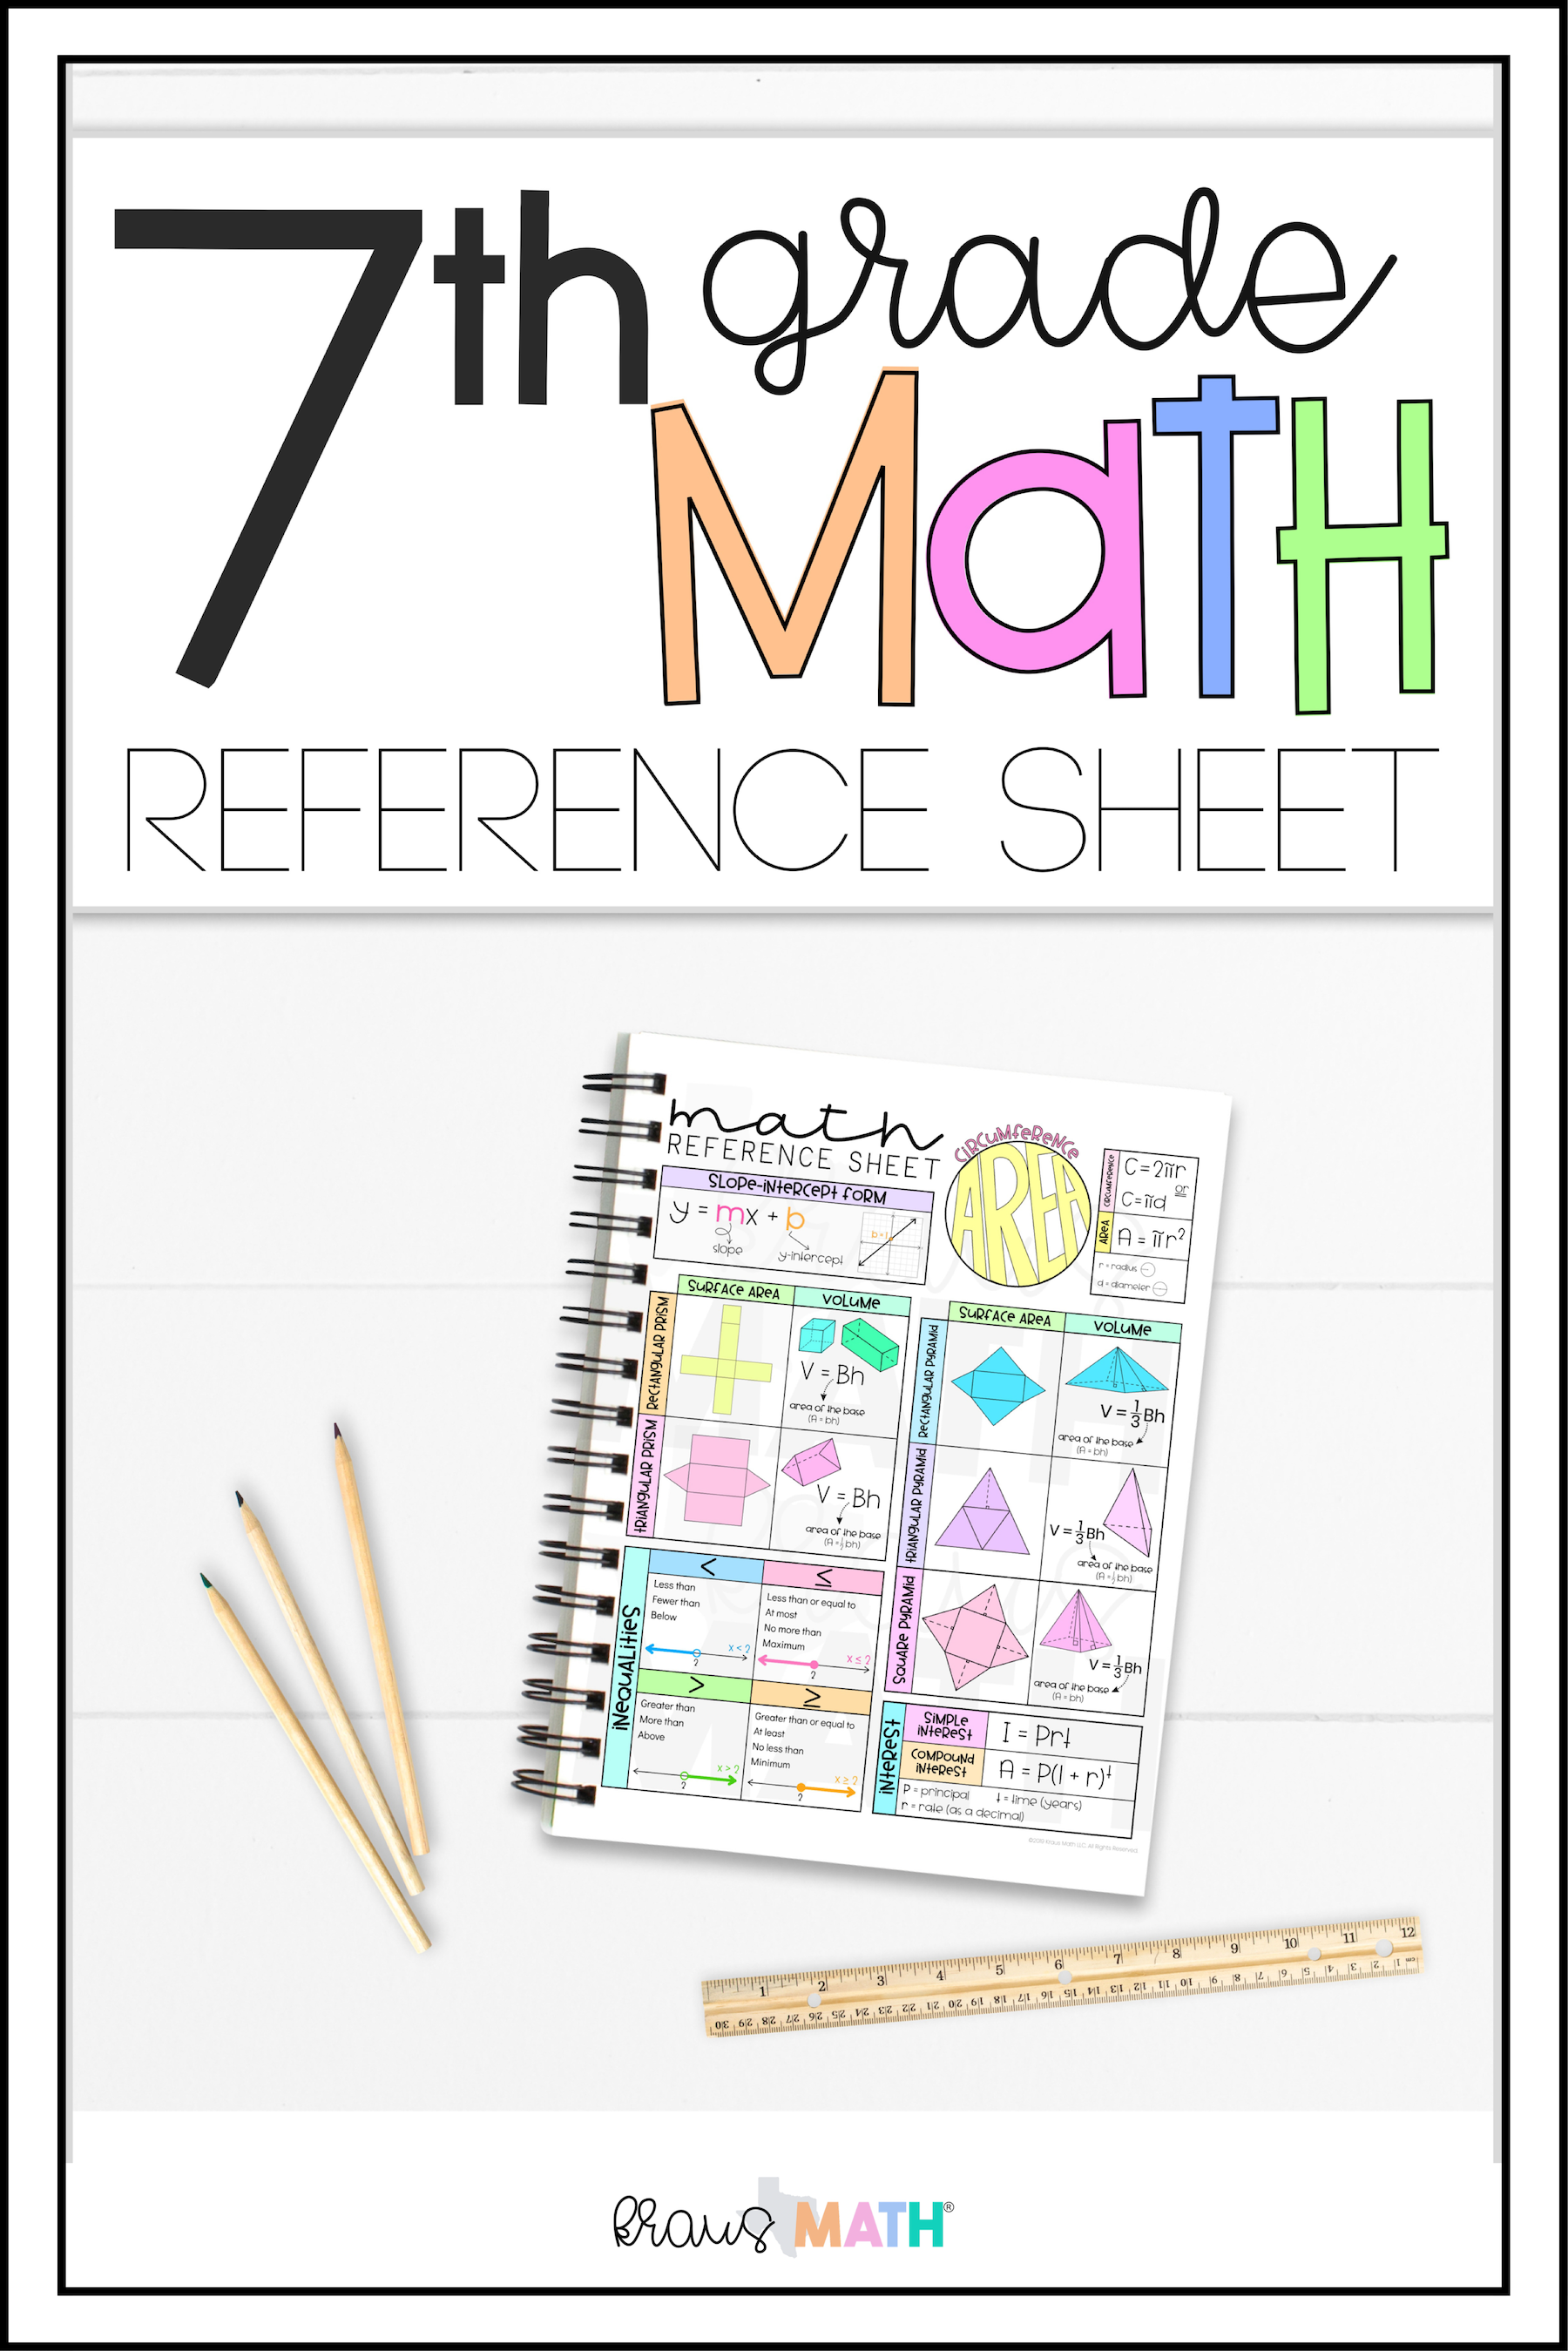 hight resolution of 7th Grade Math Reference Sheet   Kraus Math   Math reference sheet